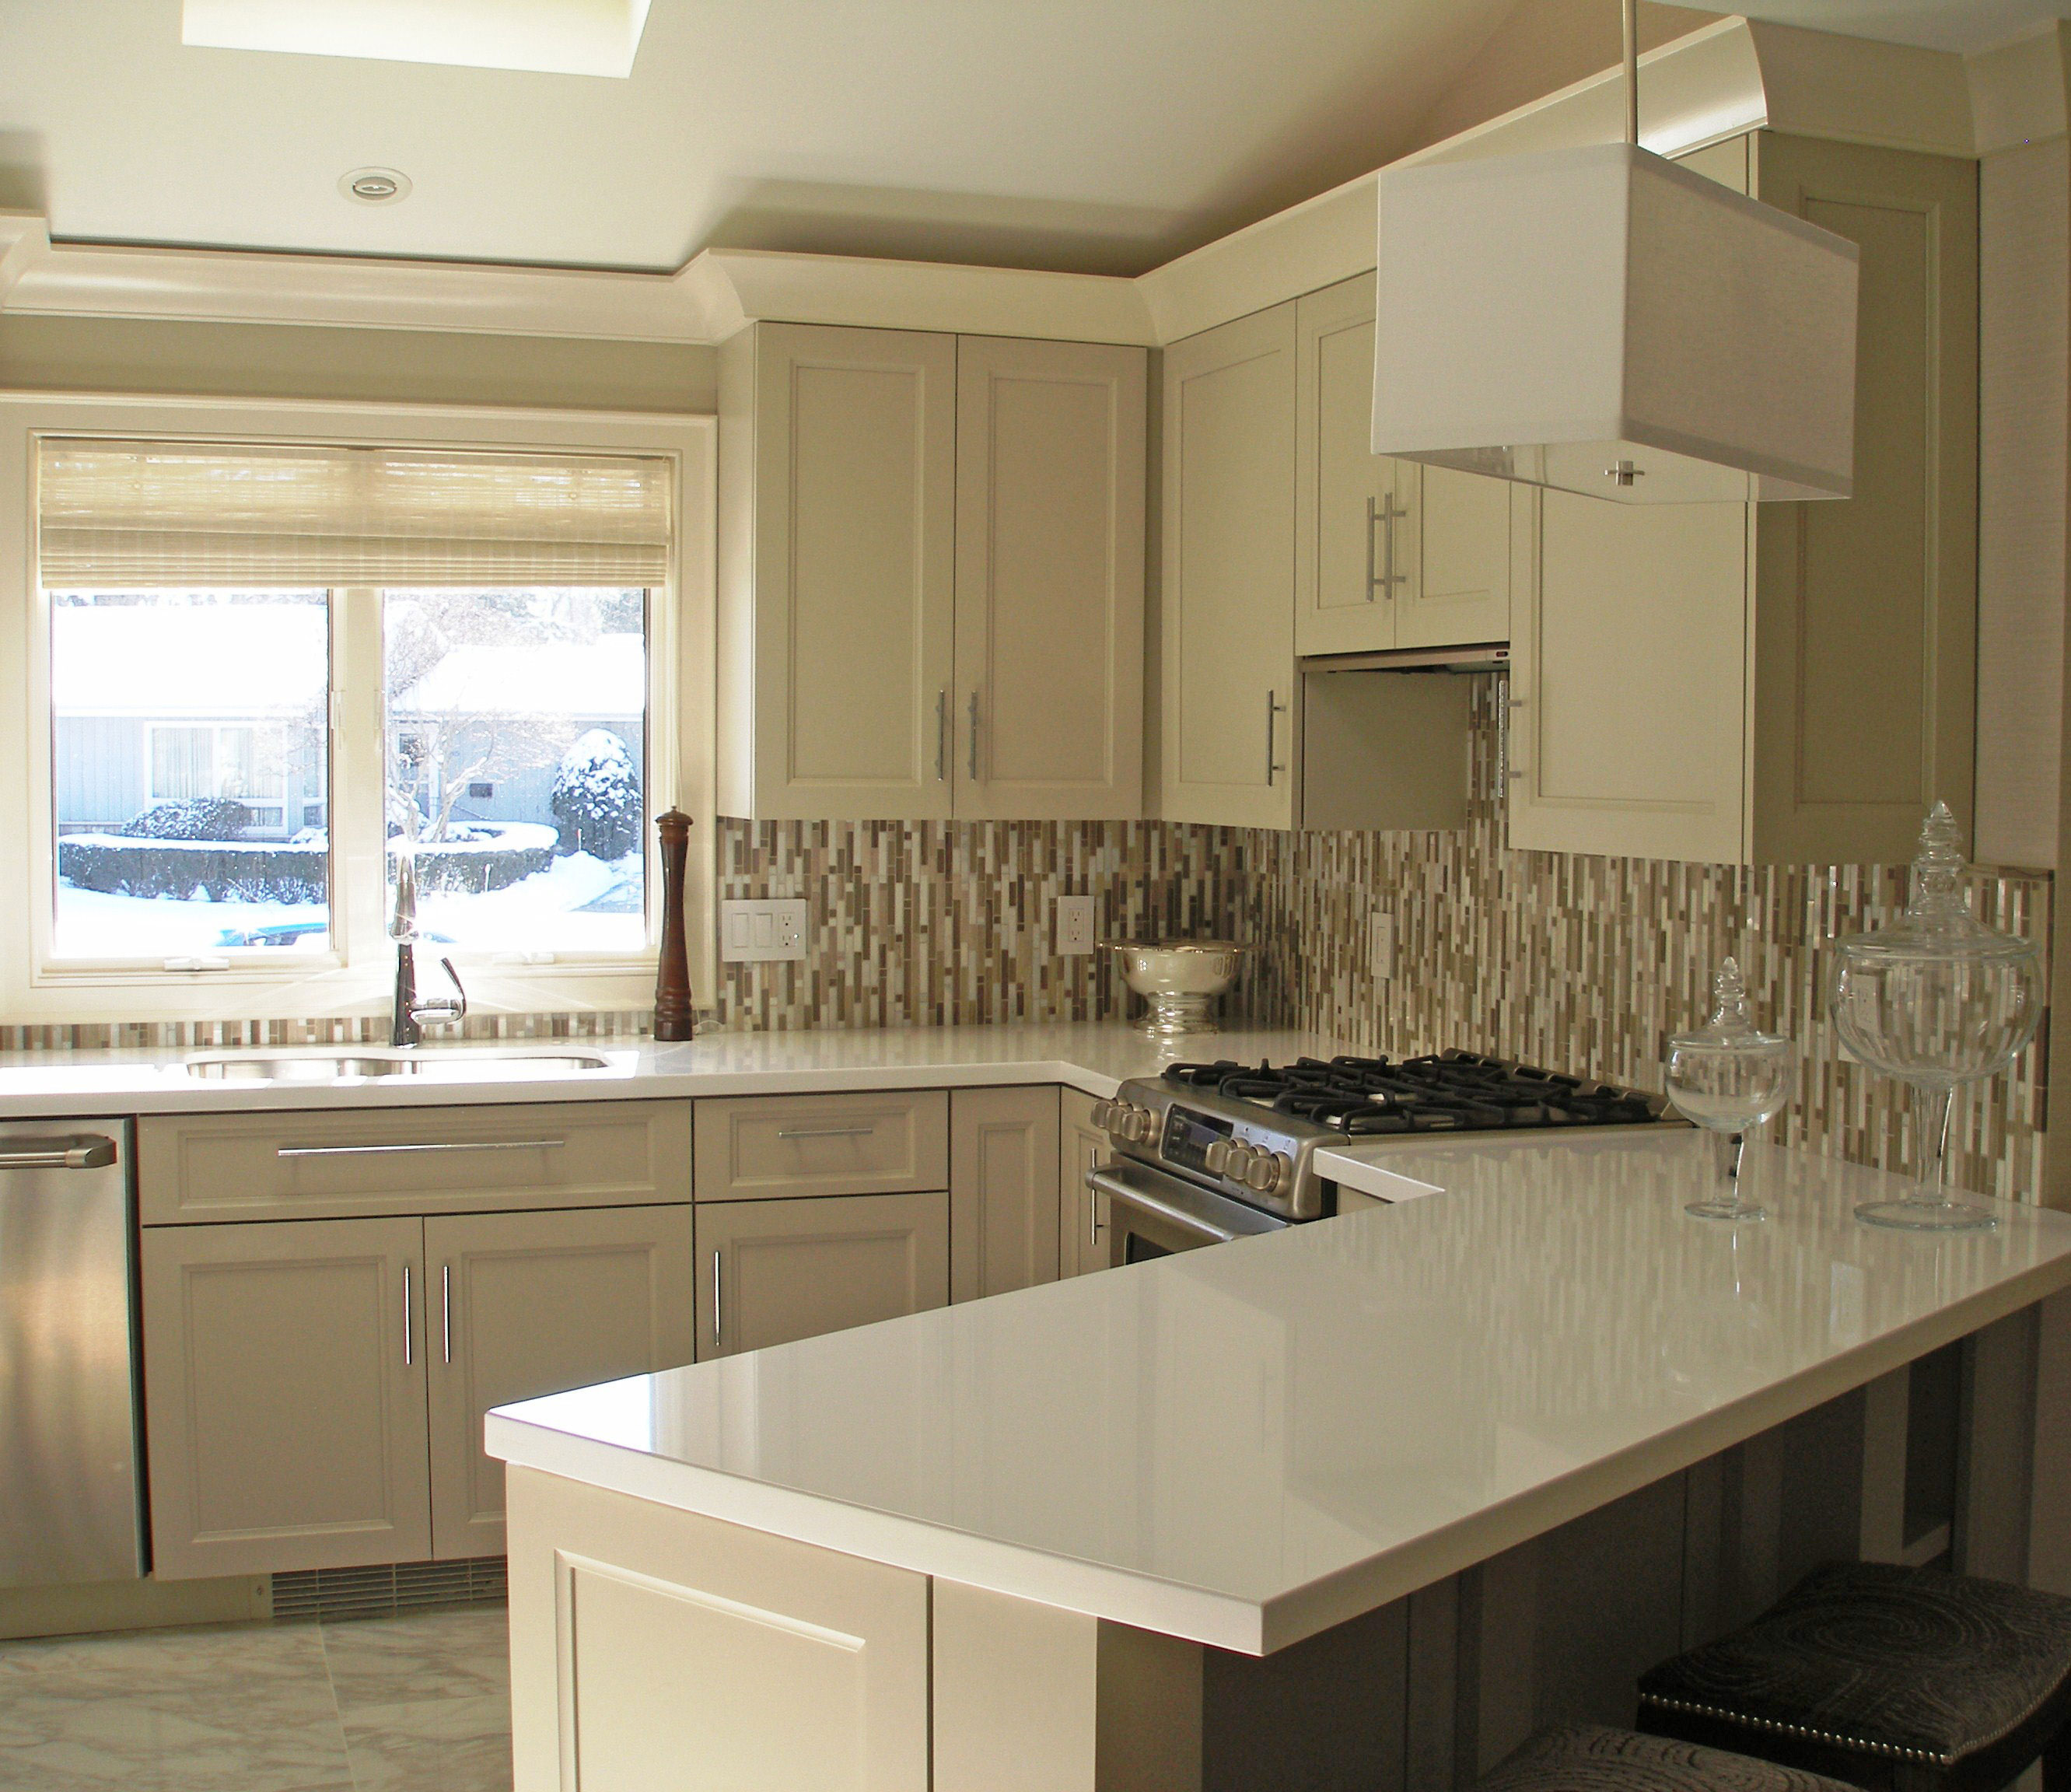 Small kitchen design is big on style for American woodcraft kitchen cabinets